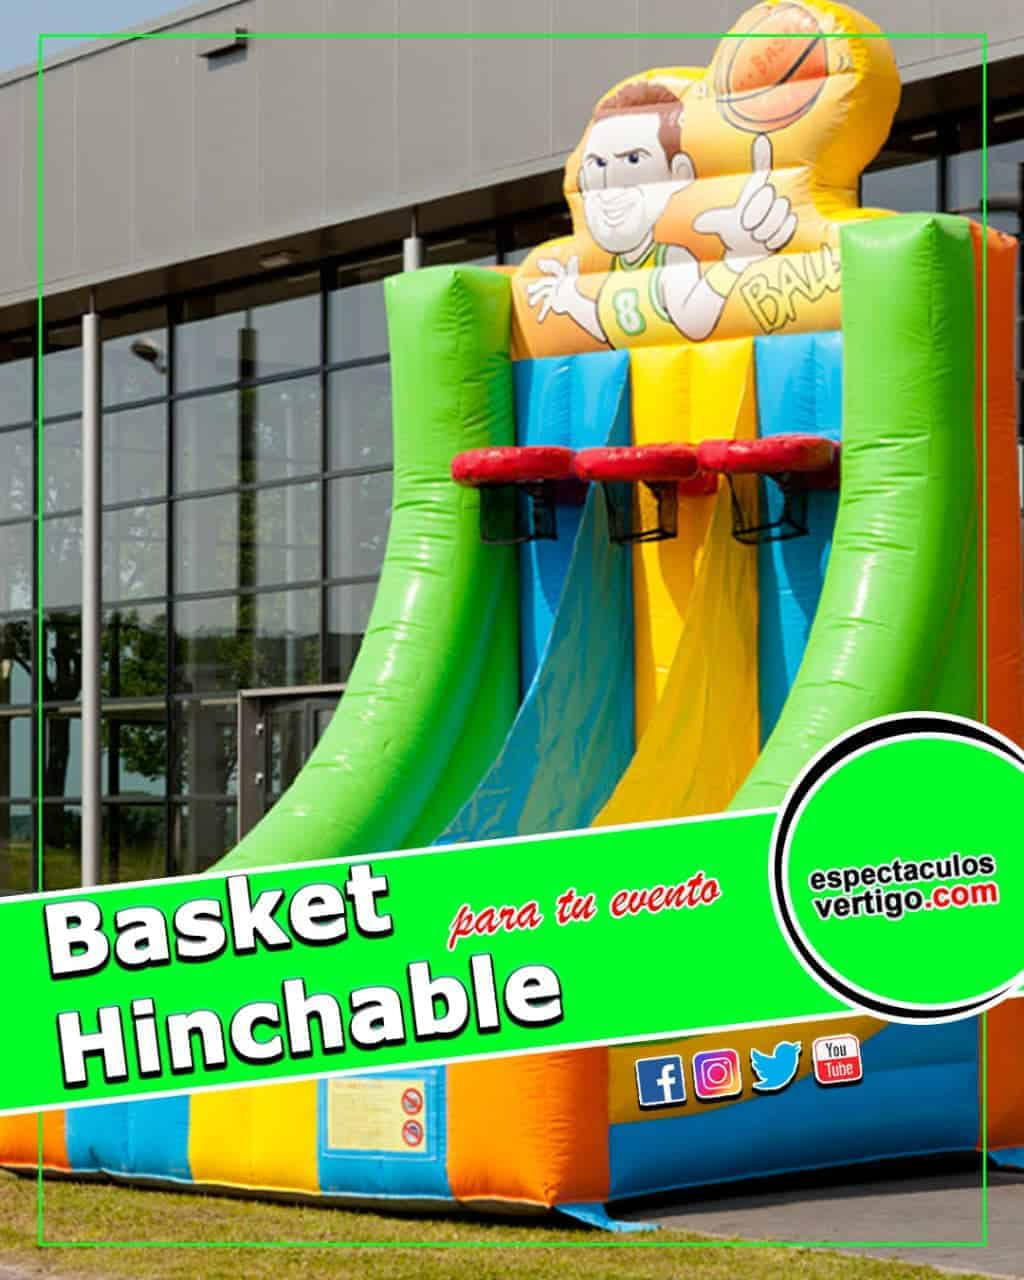 Basket Hinchable